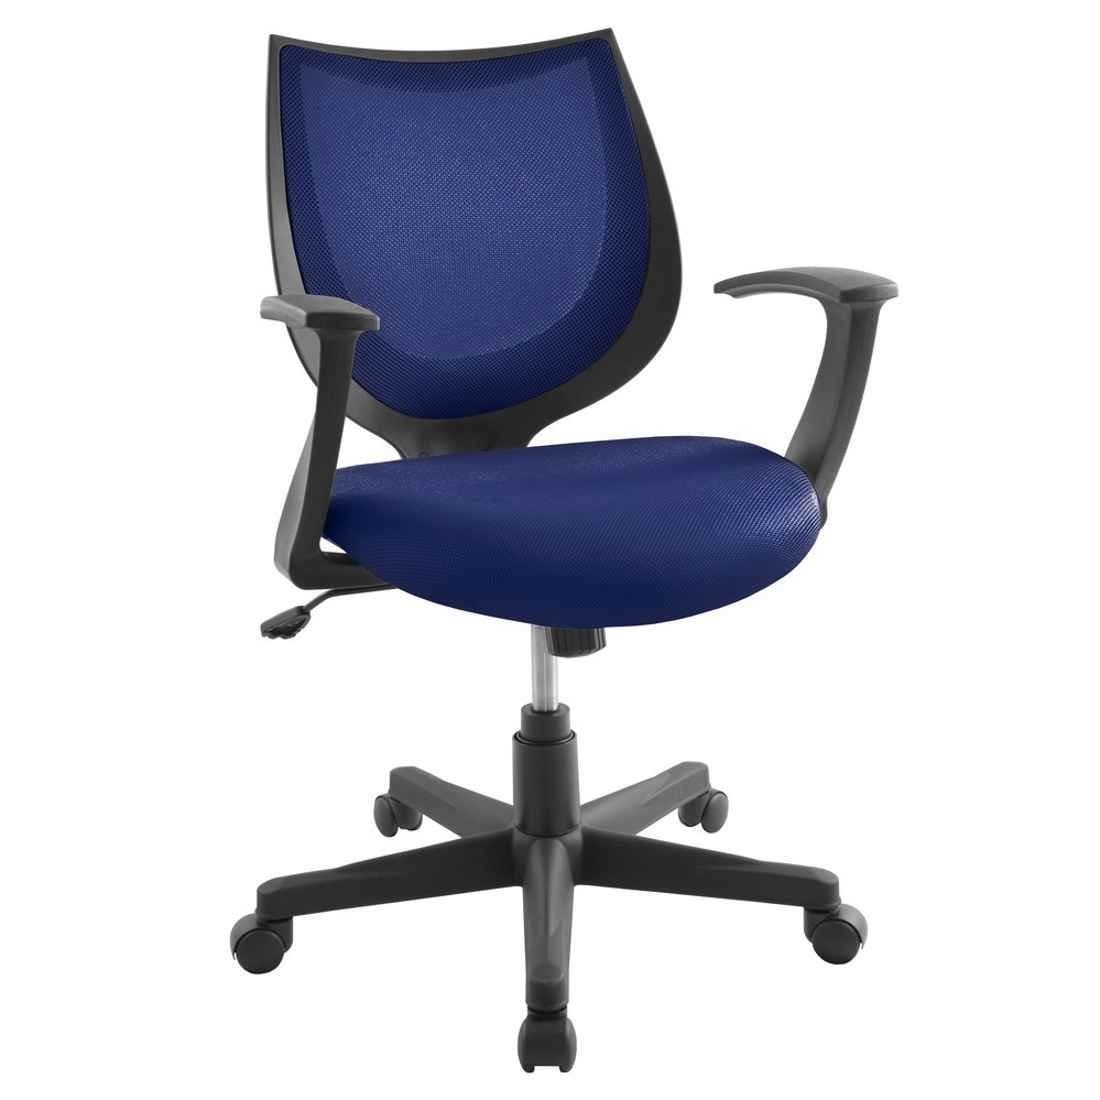 Lumisource Mesh Blue Desk Chair